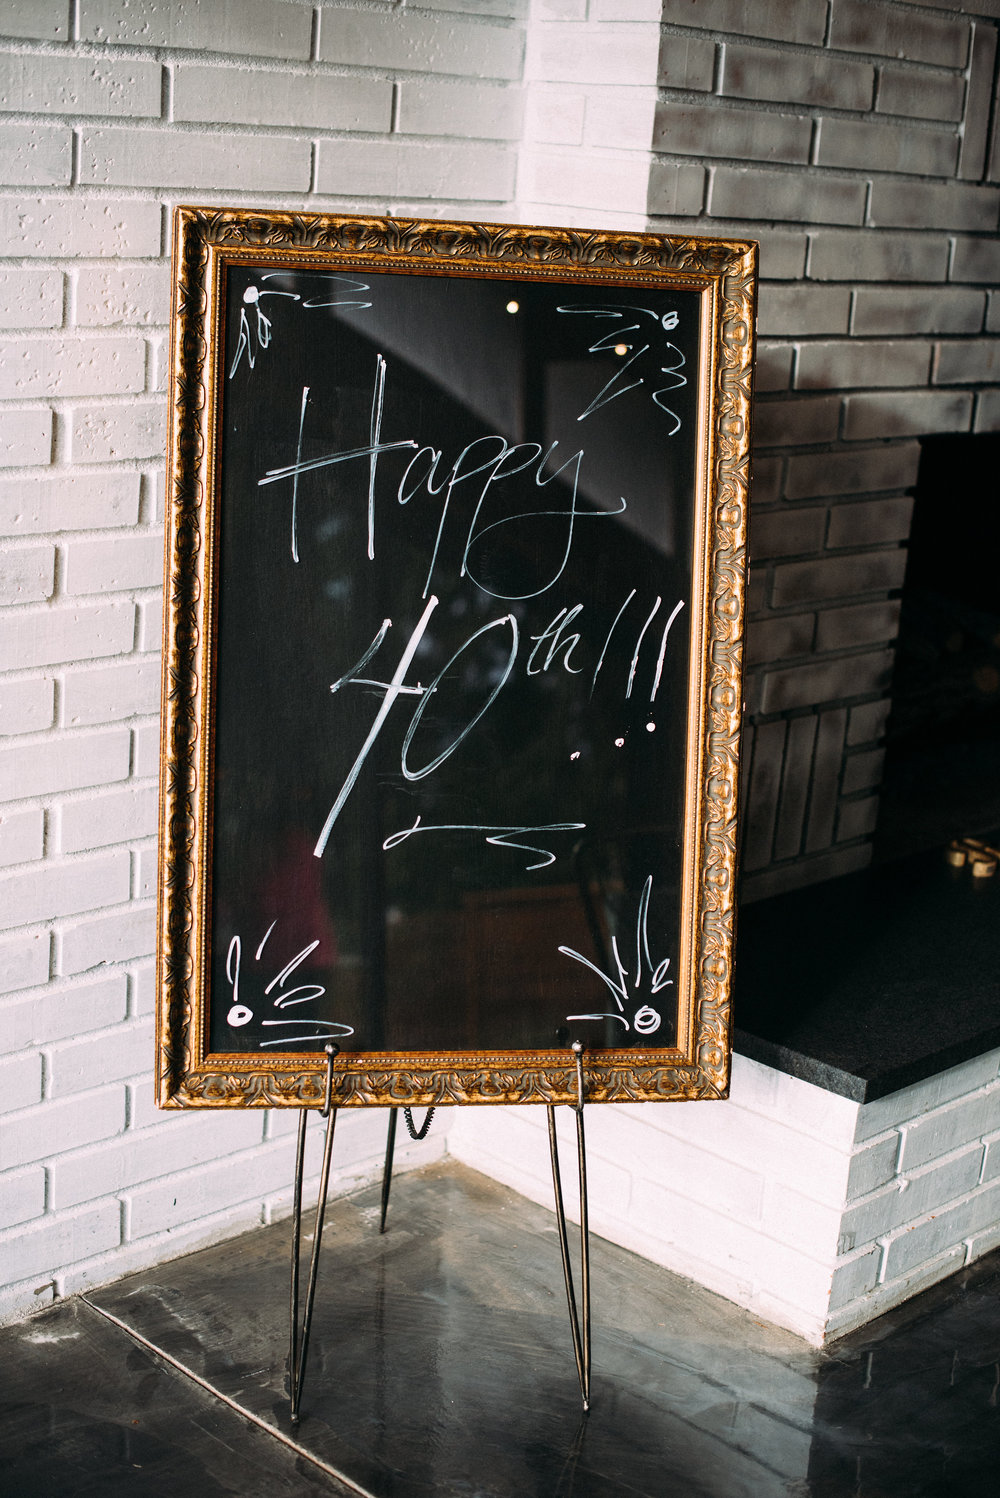 Large empty frames make the best signs - the glass is the perfect canvas for any message you want to create.